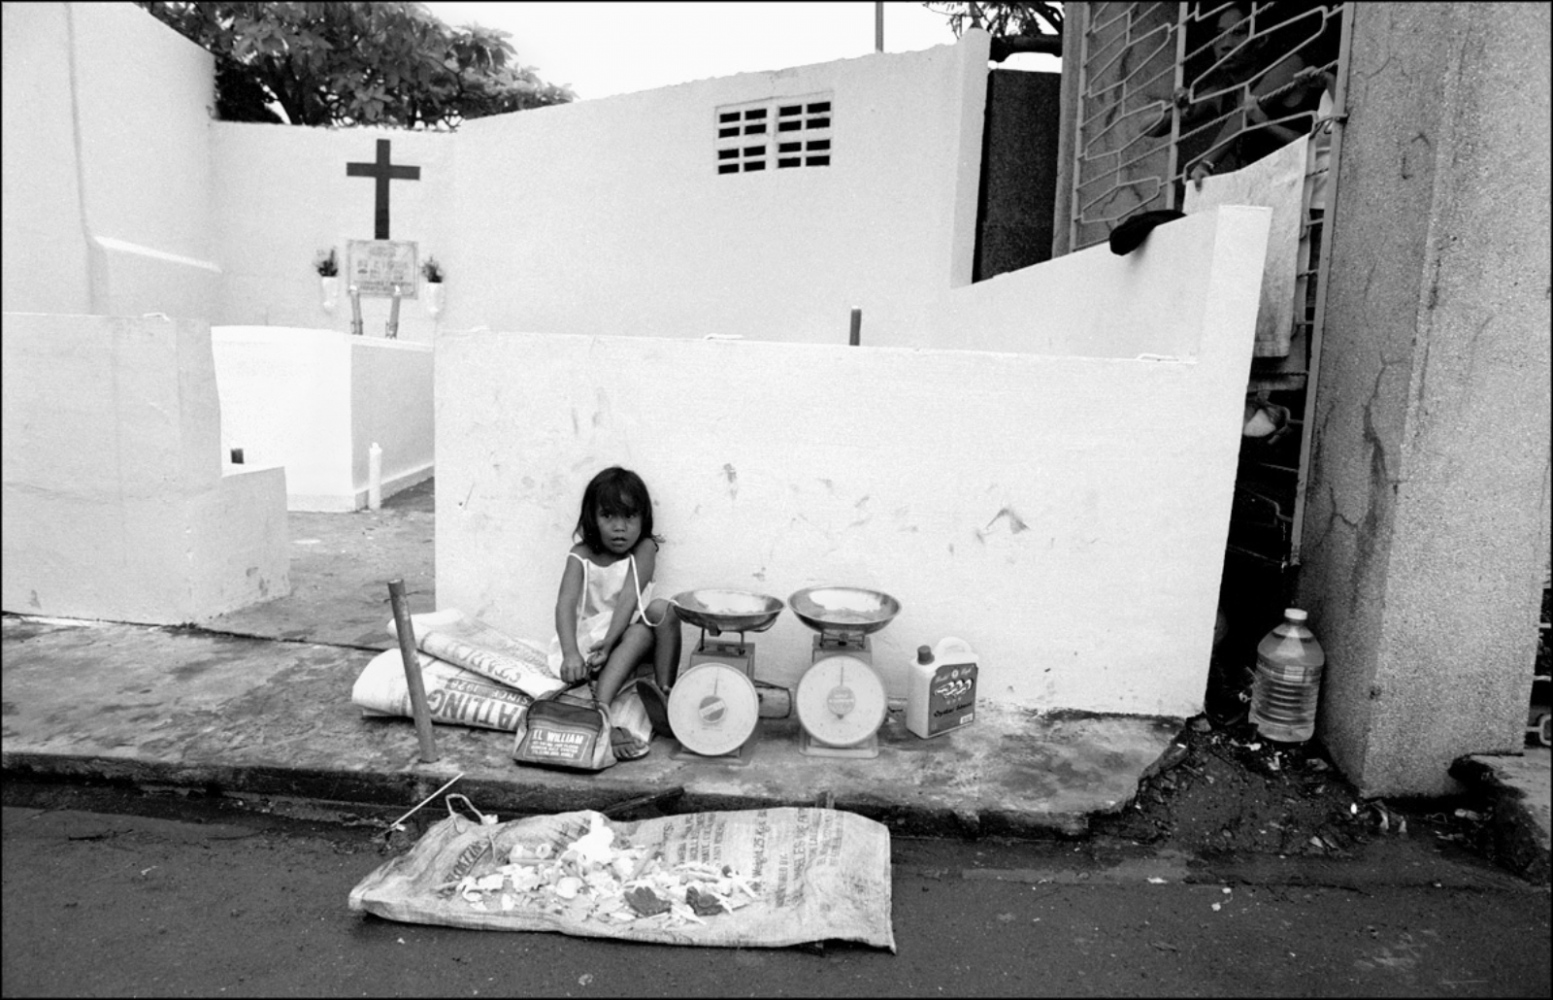 Girl Selling Candle Wax, North Cemetery, Manila, Philippines, November 2005